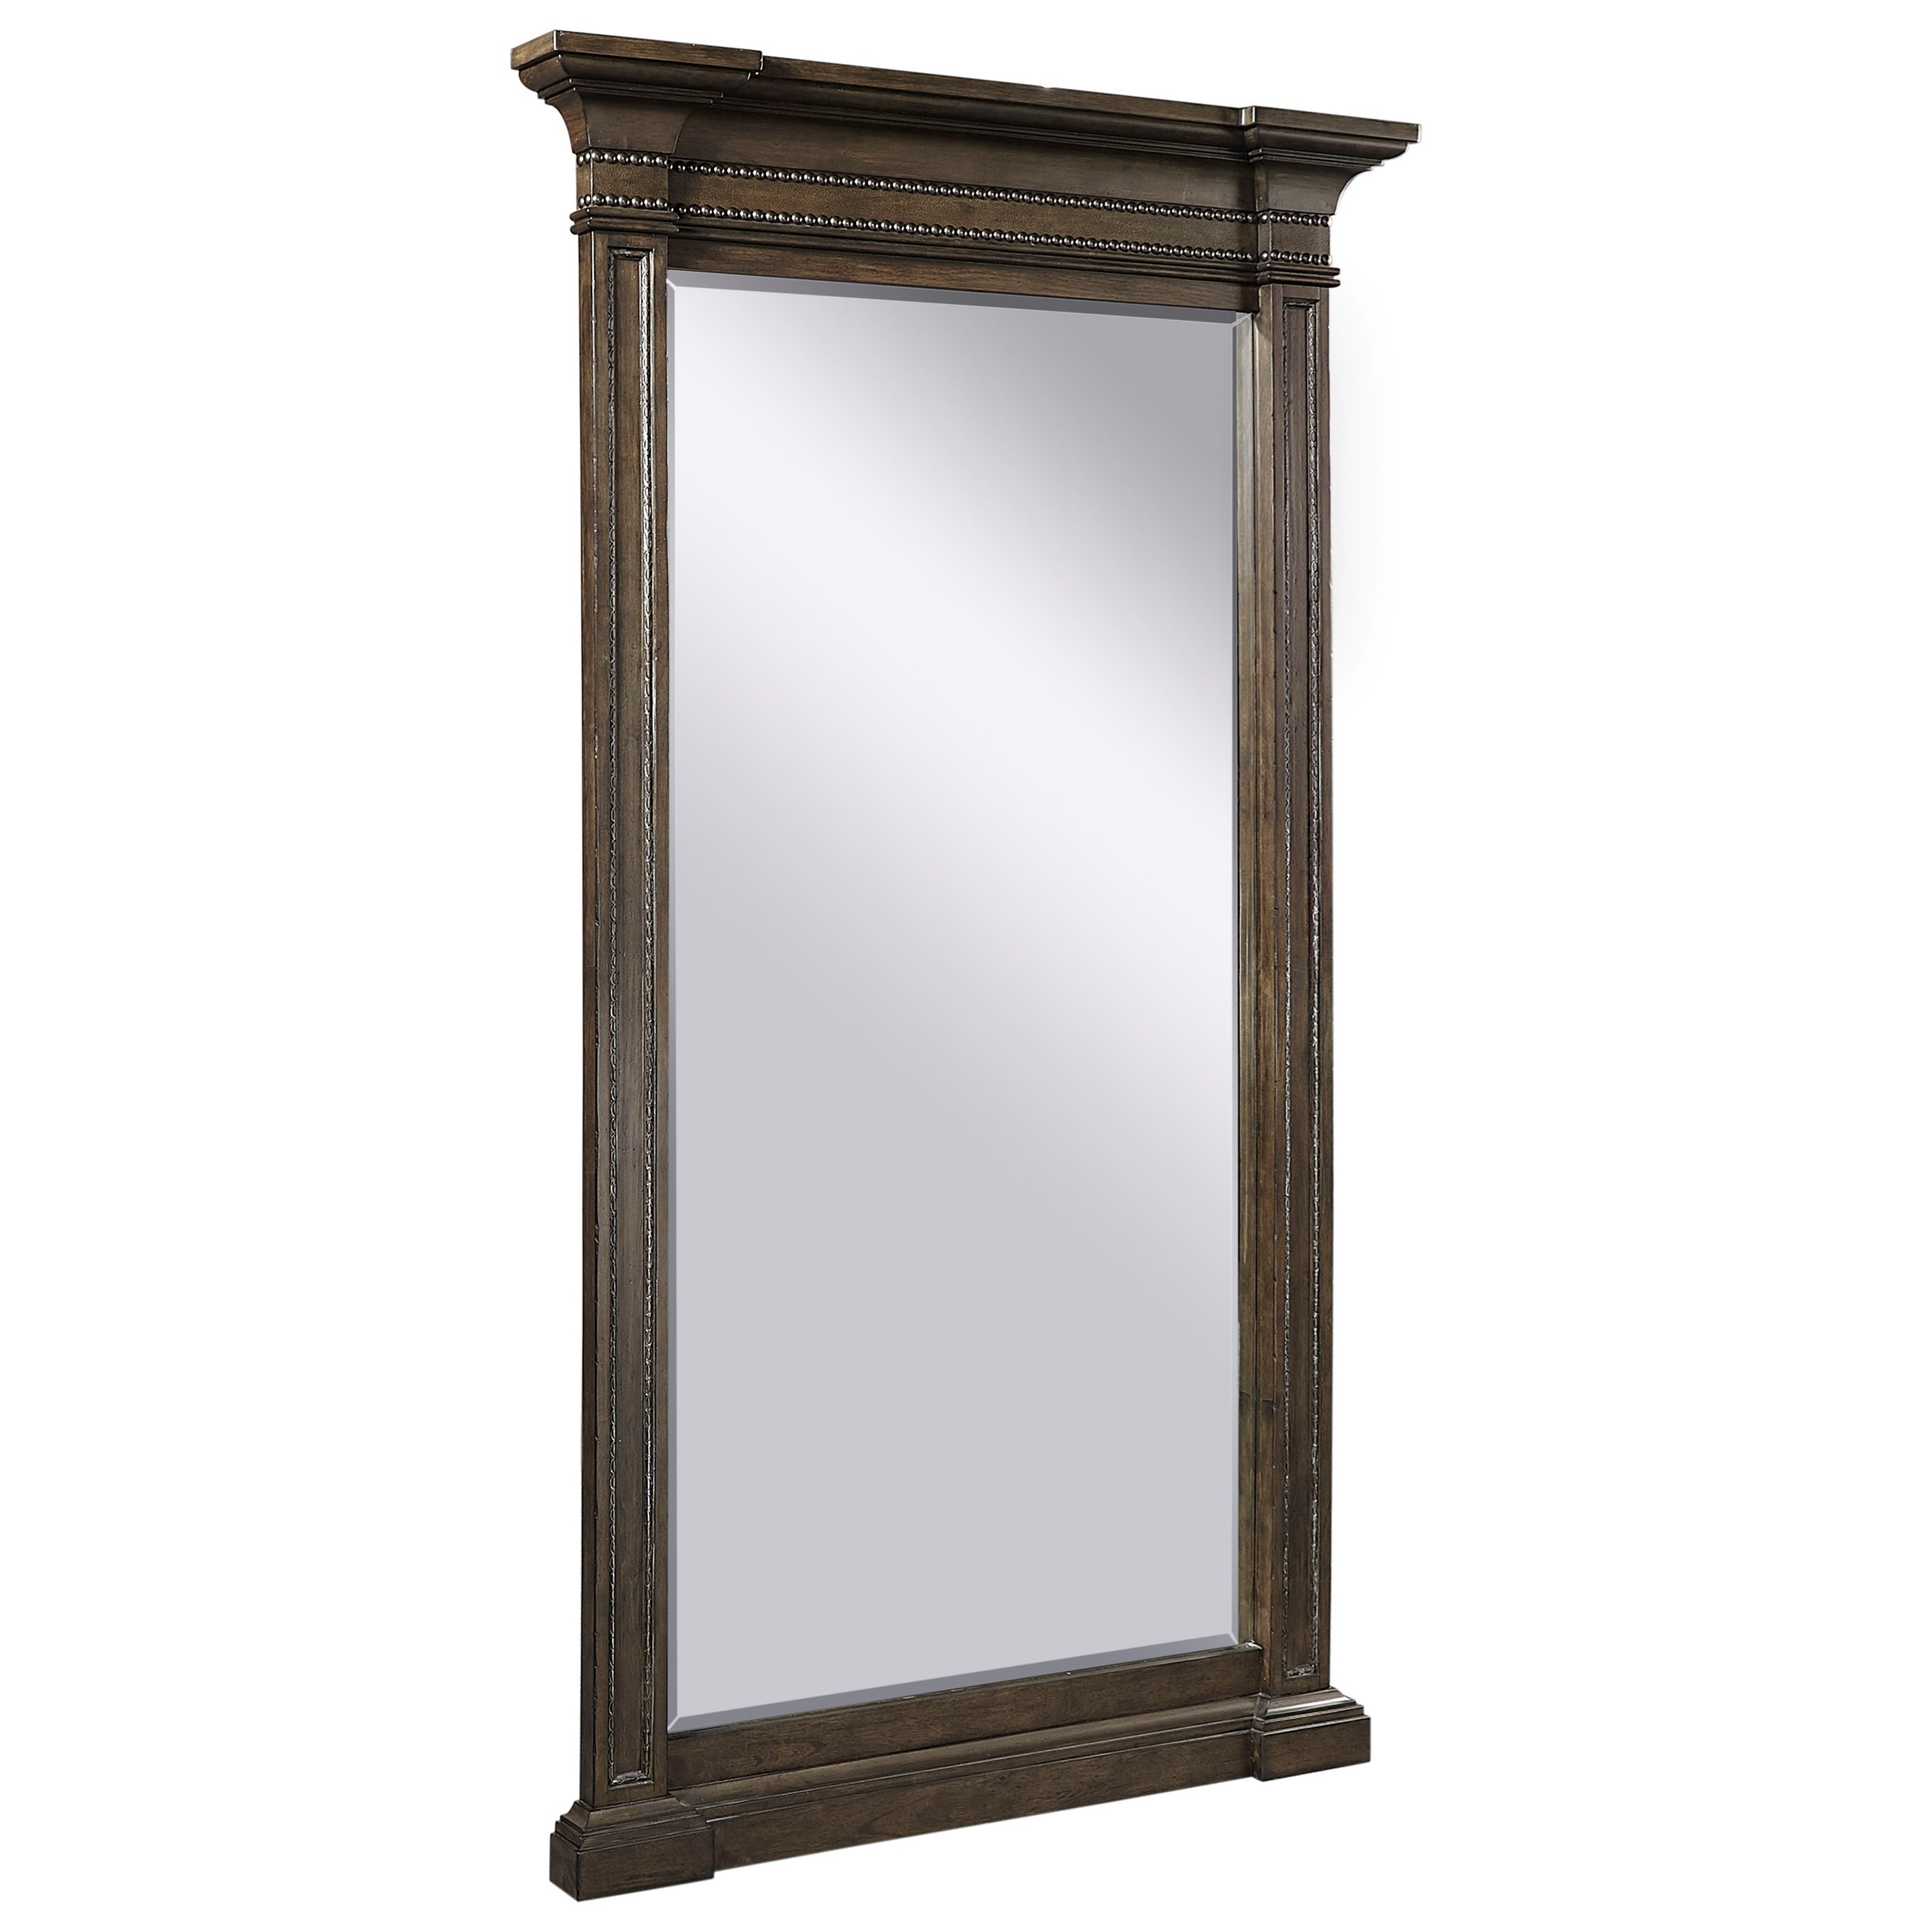 Foxhill Floor Mirror by Aspenhome at Baer's Furniture